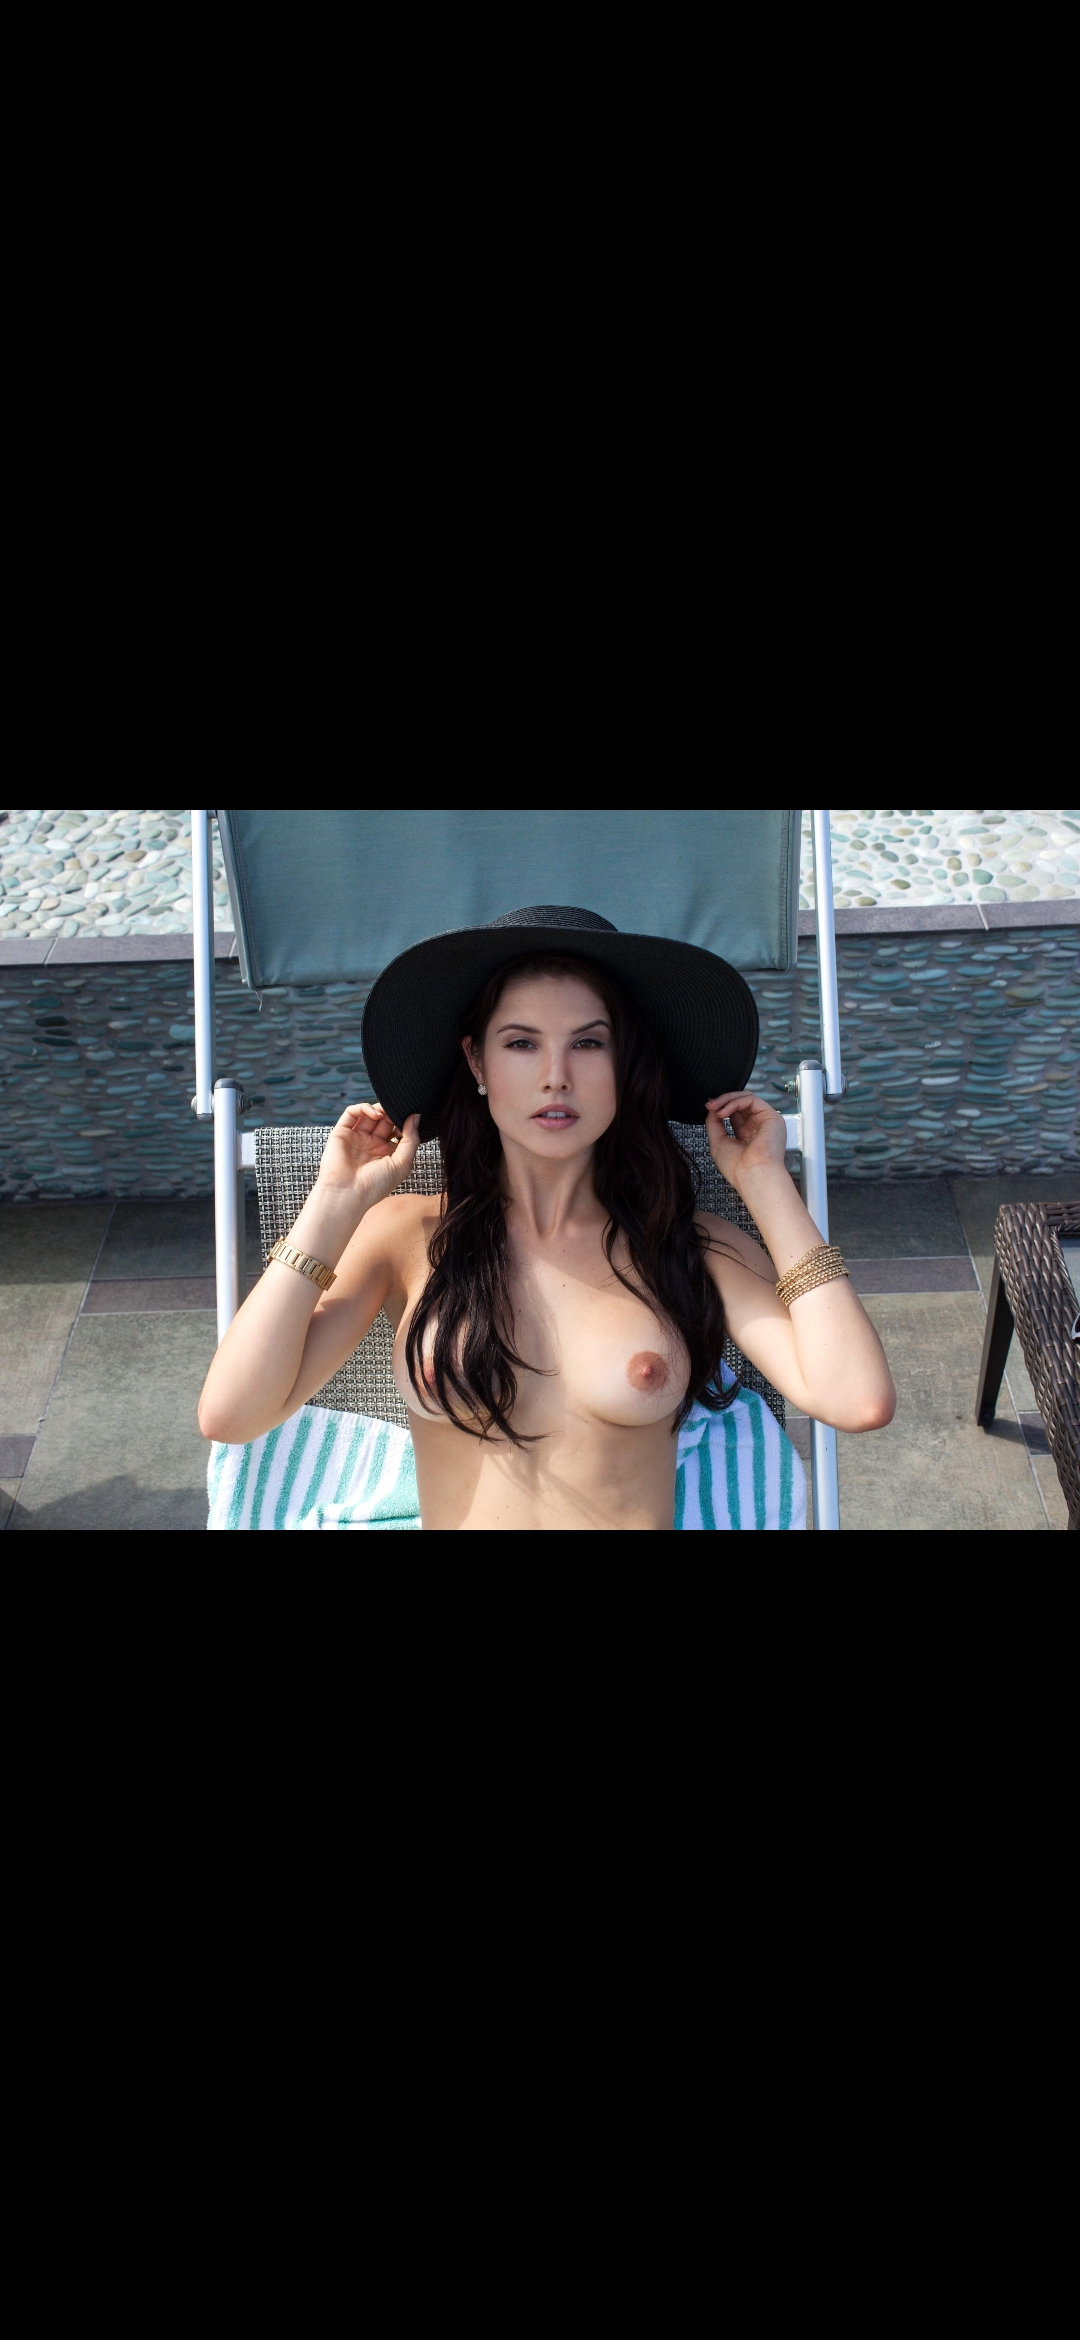 Amanda Cerny Nipples : amanda, cerny, nipples, Amanda, Cerny, Perfect, Nipples, JerkOffToCelebs